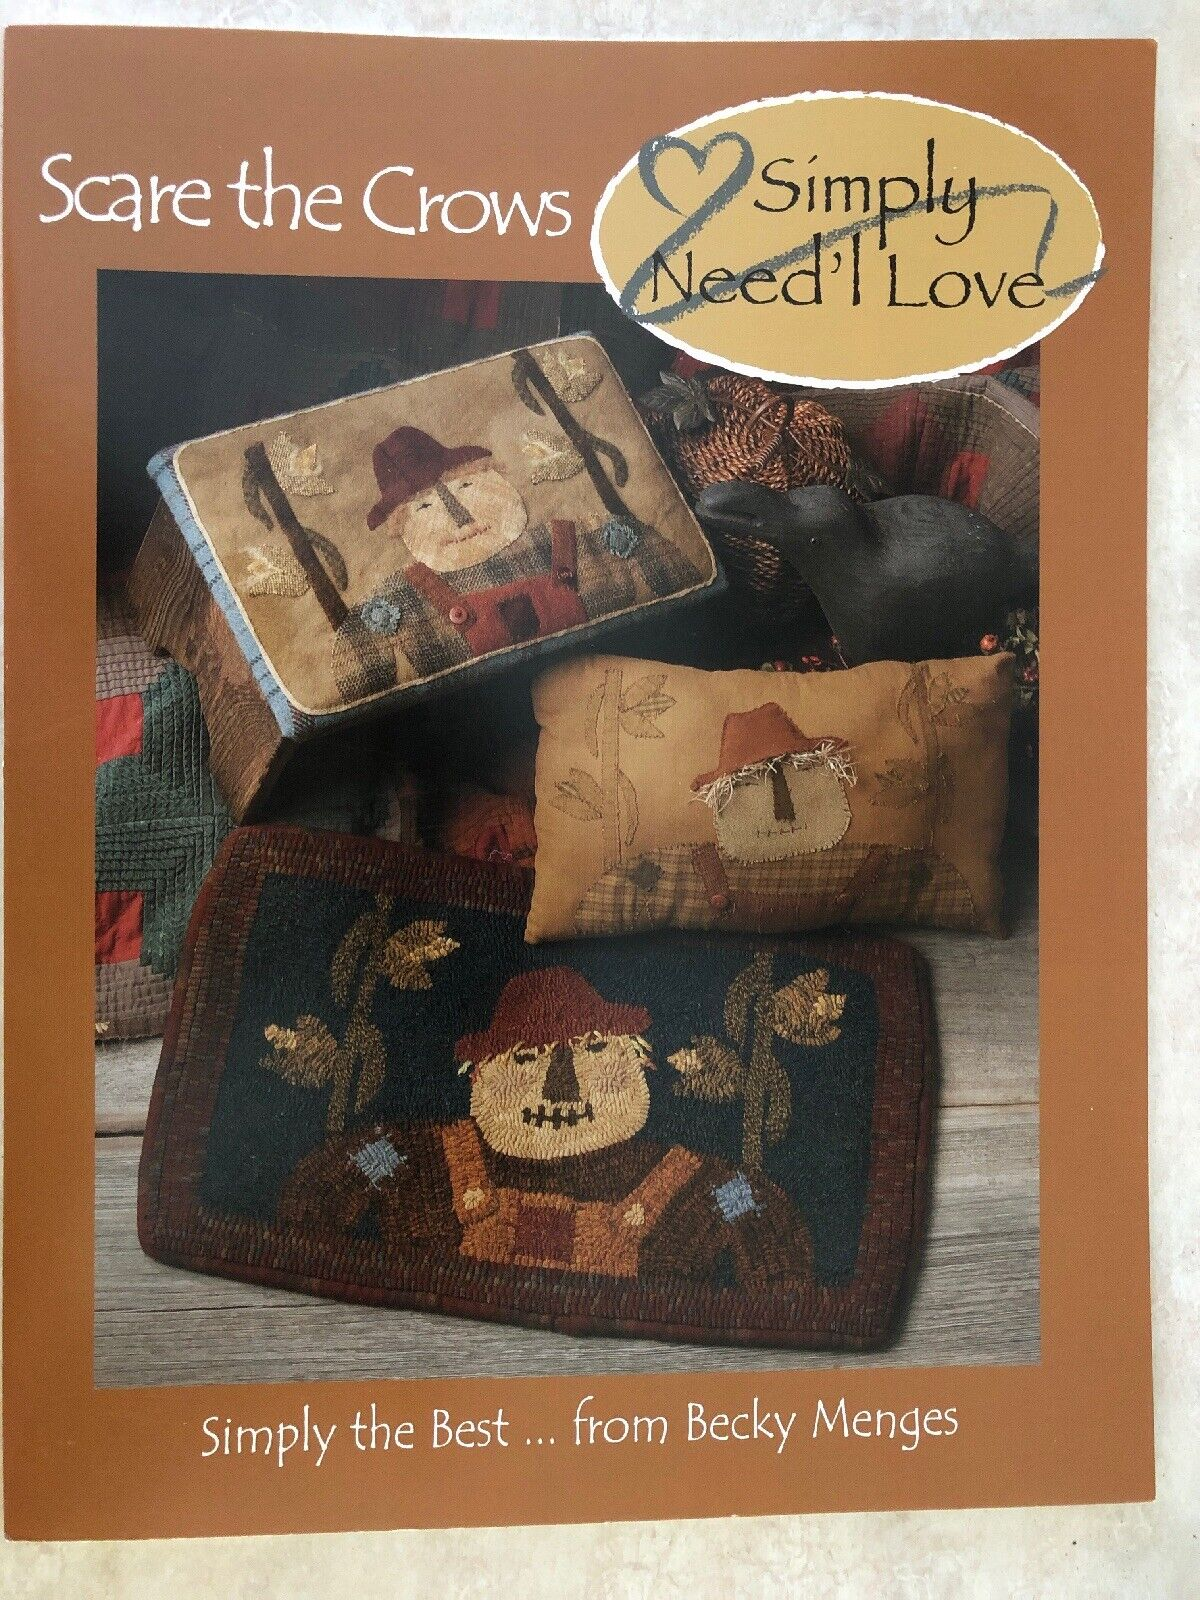 Simply Need L Love Scare The Crows Quilt Wool Applique Penny Rug Hooking